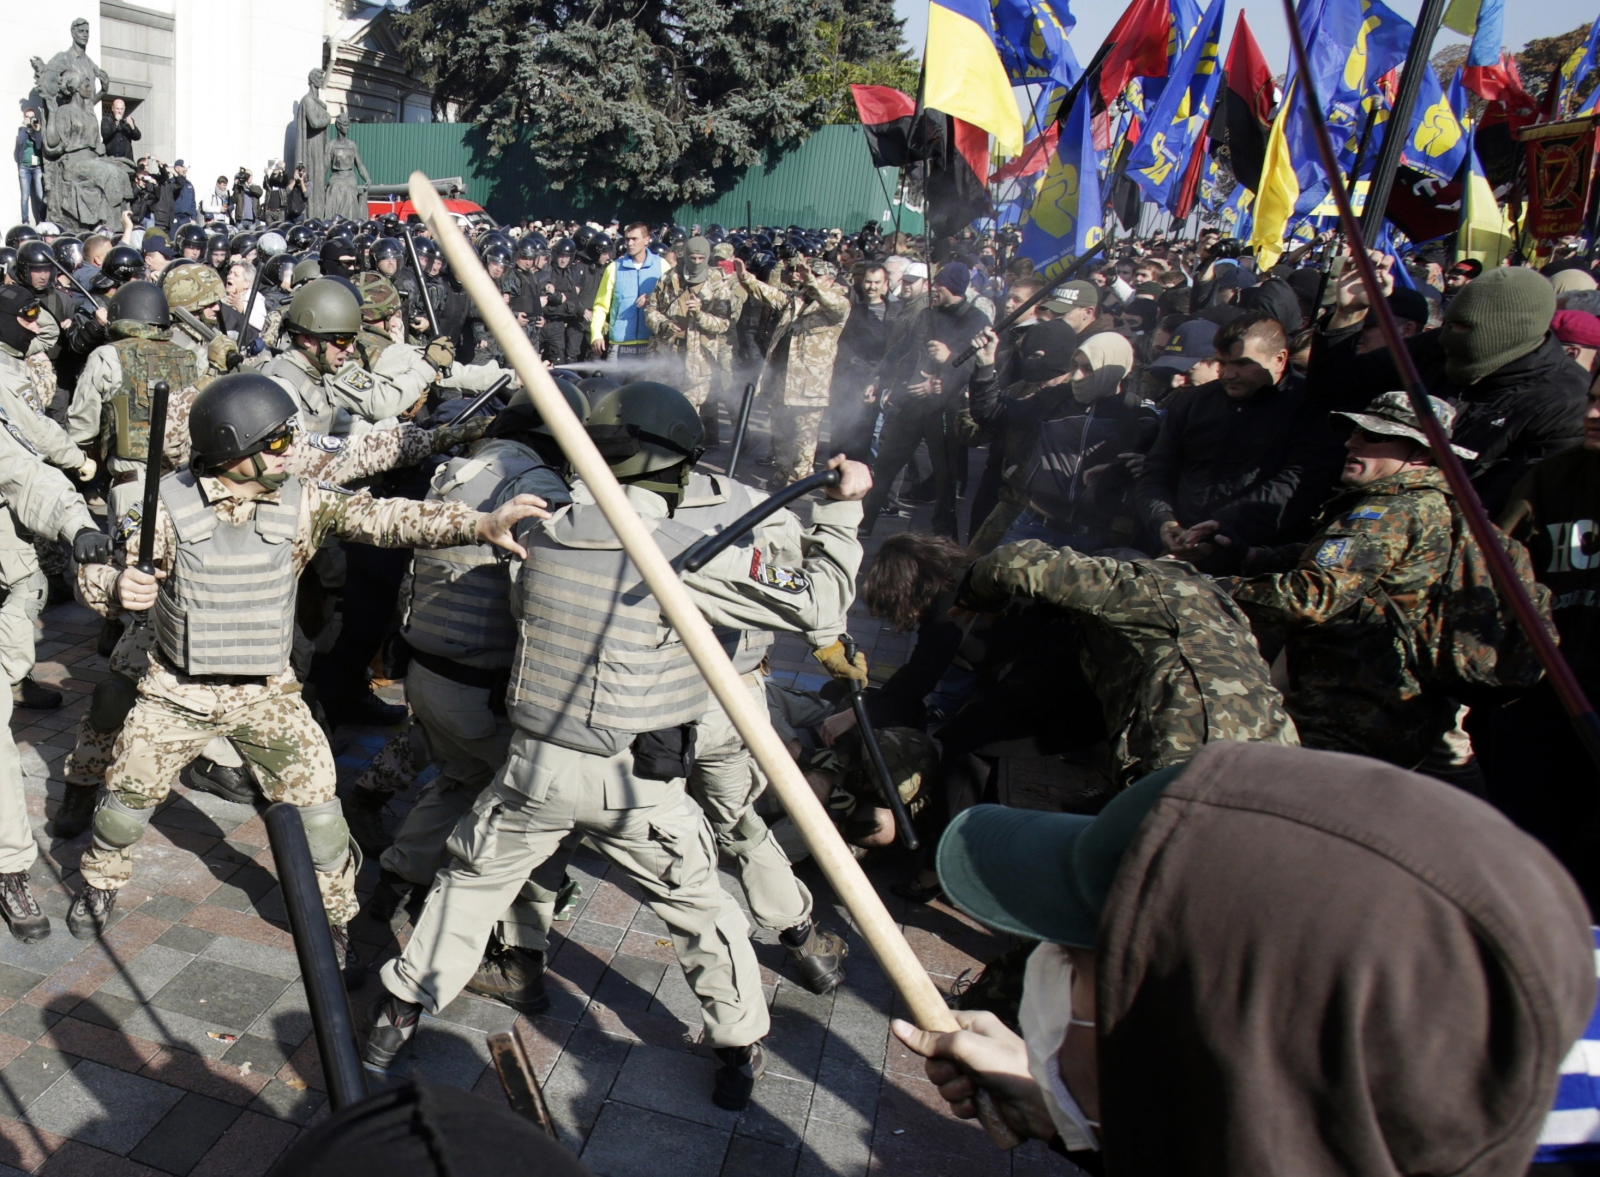 Ukraine riot police protesters violence clash